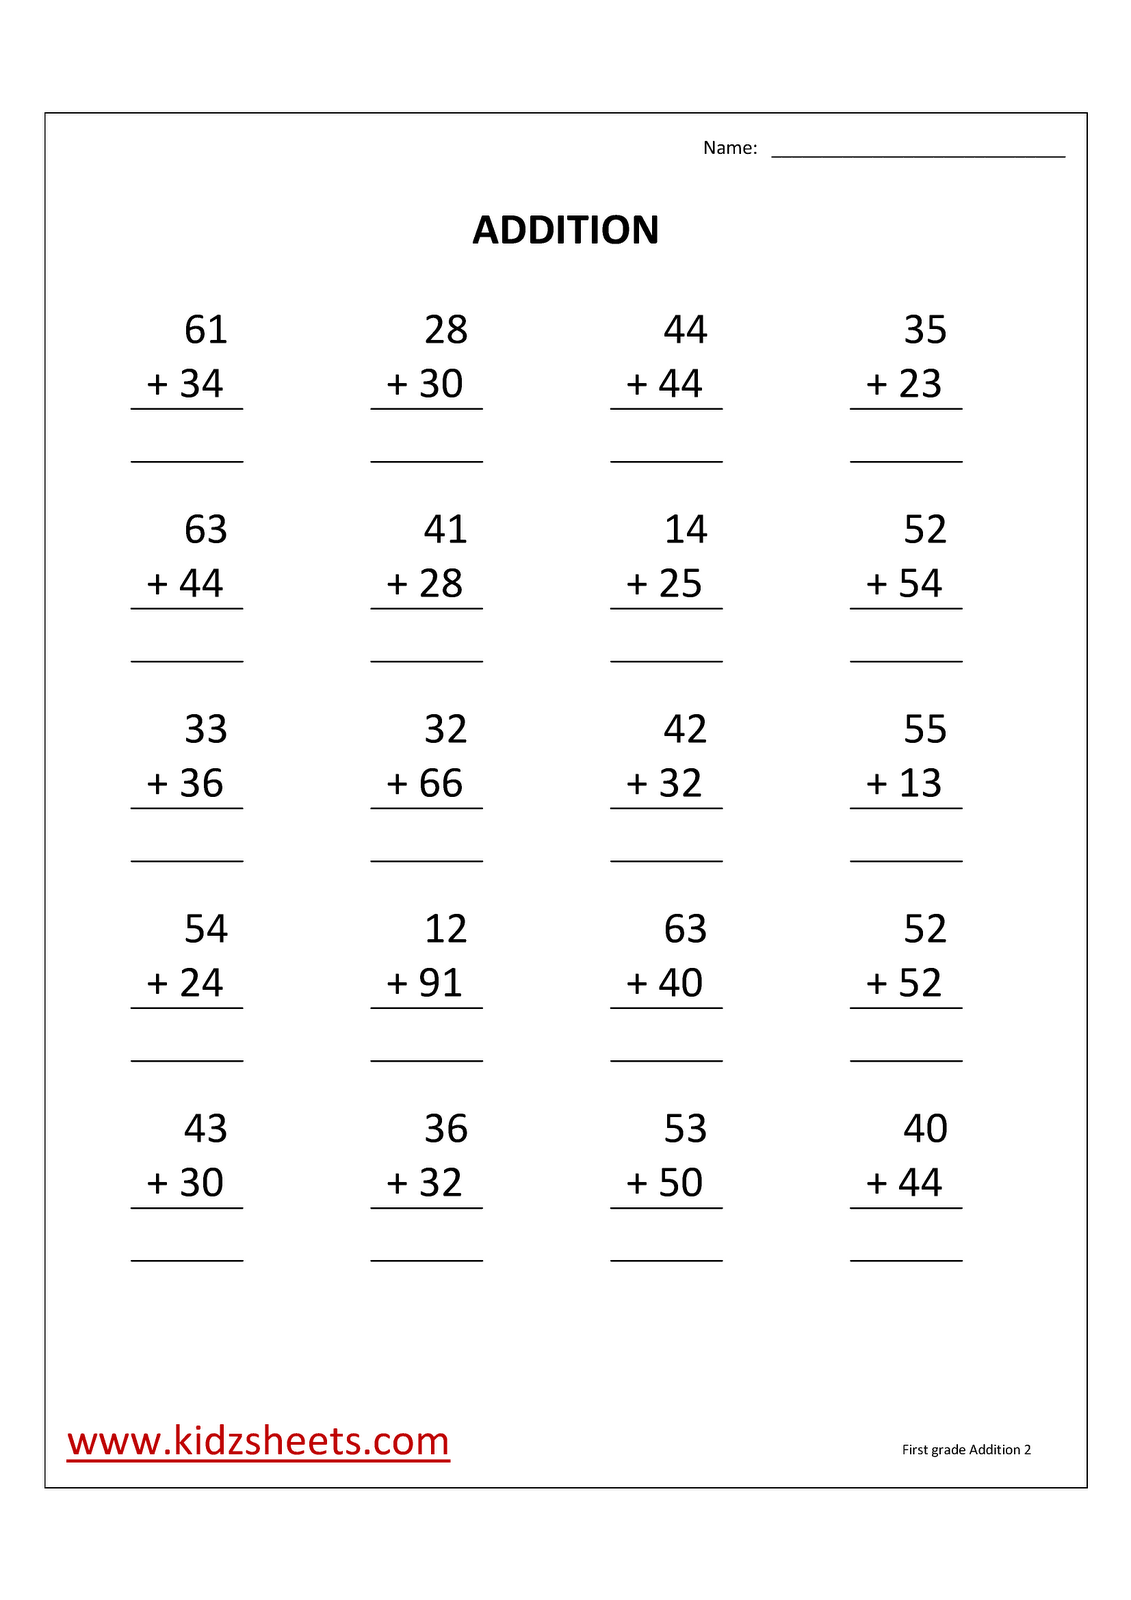 1St Grade Addition Worksheets – Fun Addition Worksheets for 1st Grade